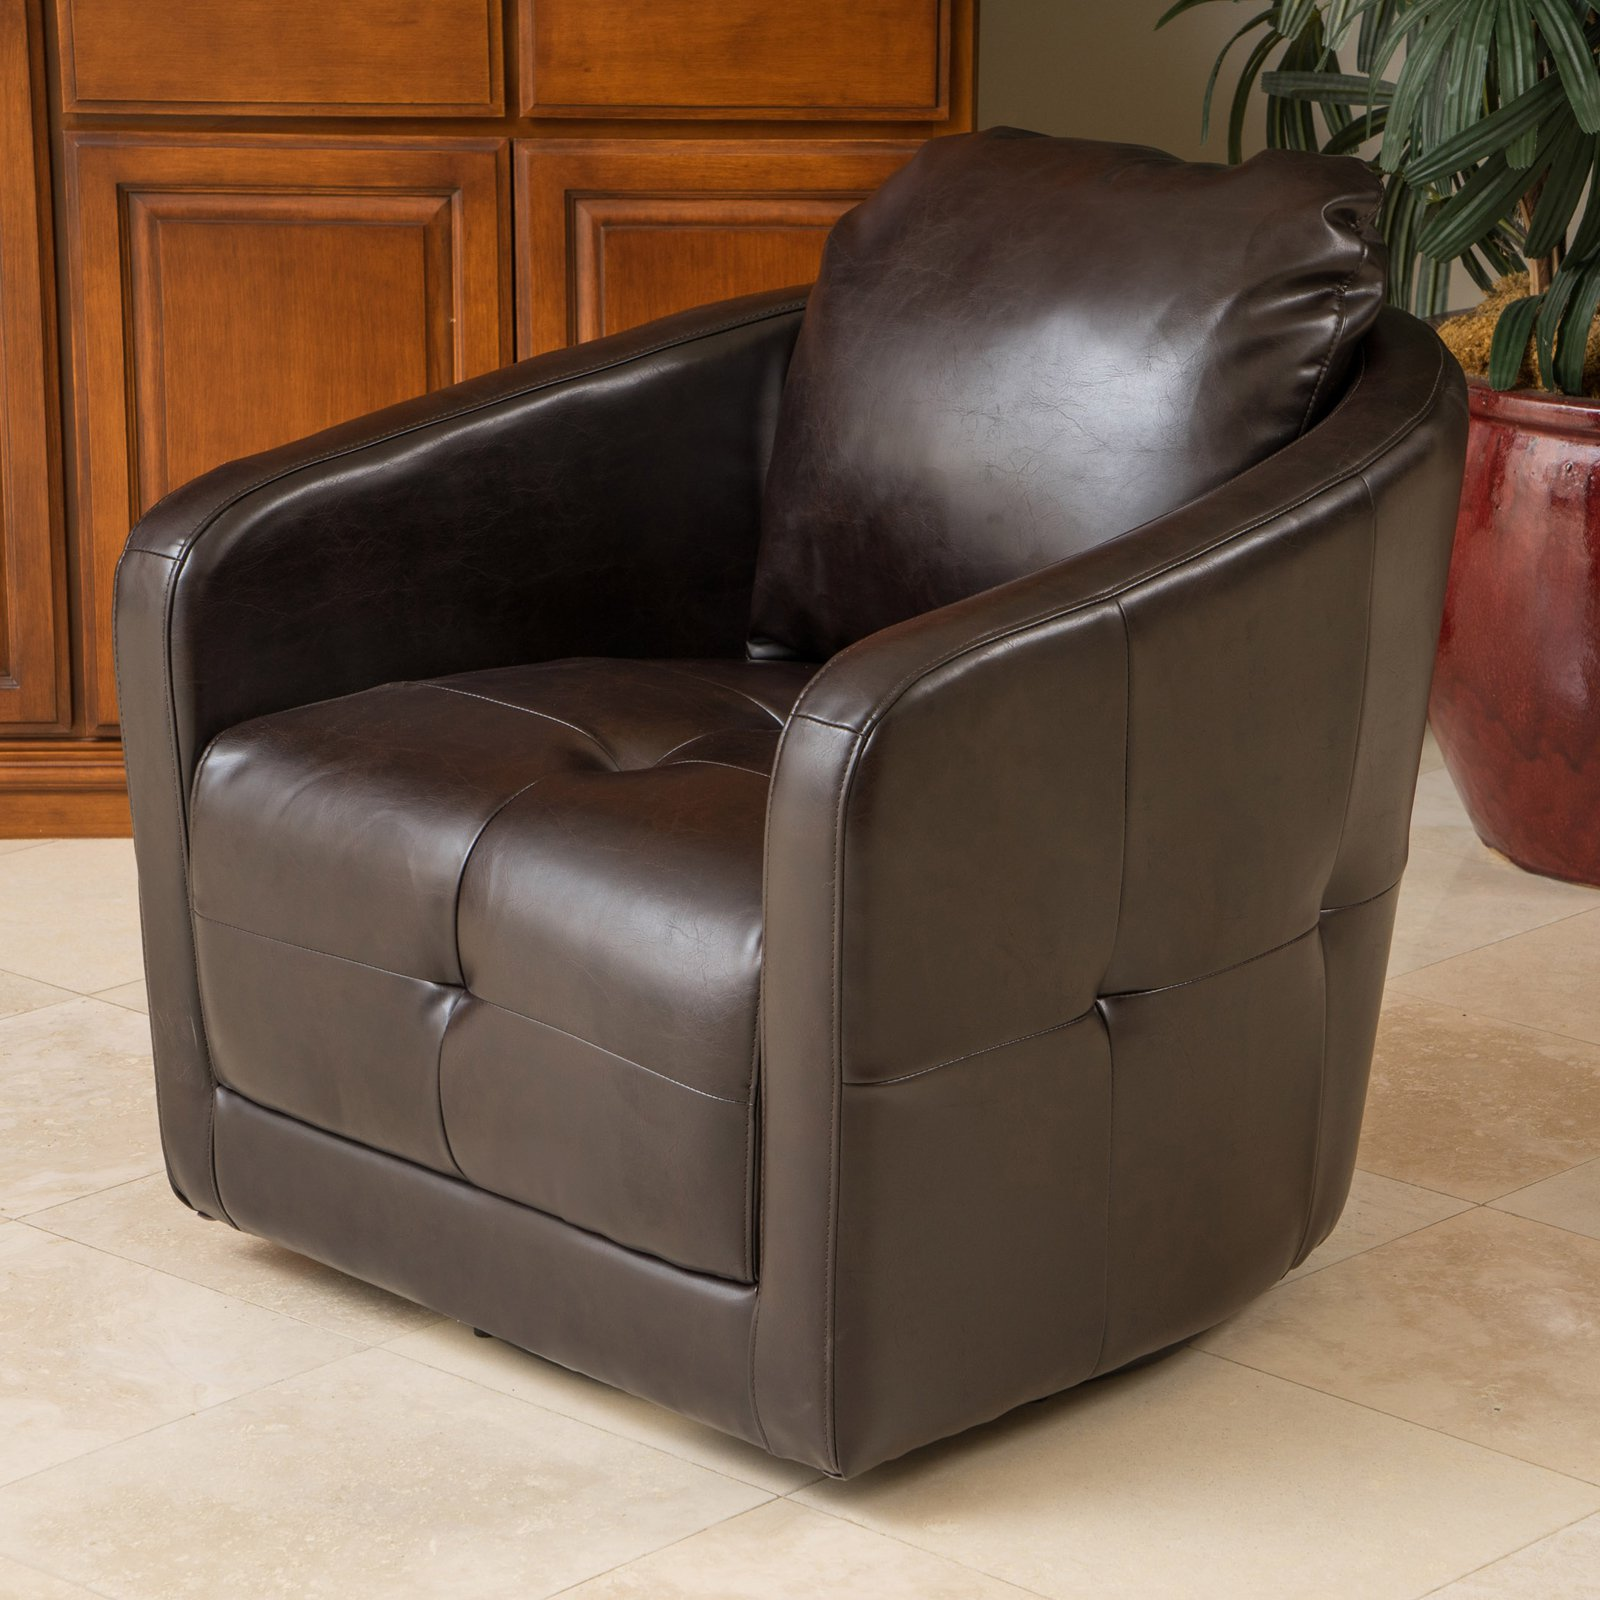 Best Selling Home Concordia Swivel Club Chair by GDF Studio